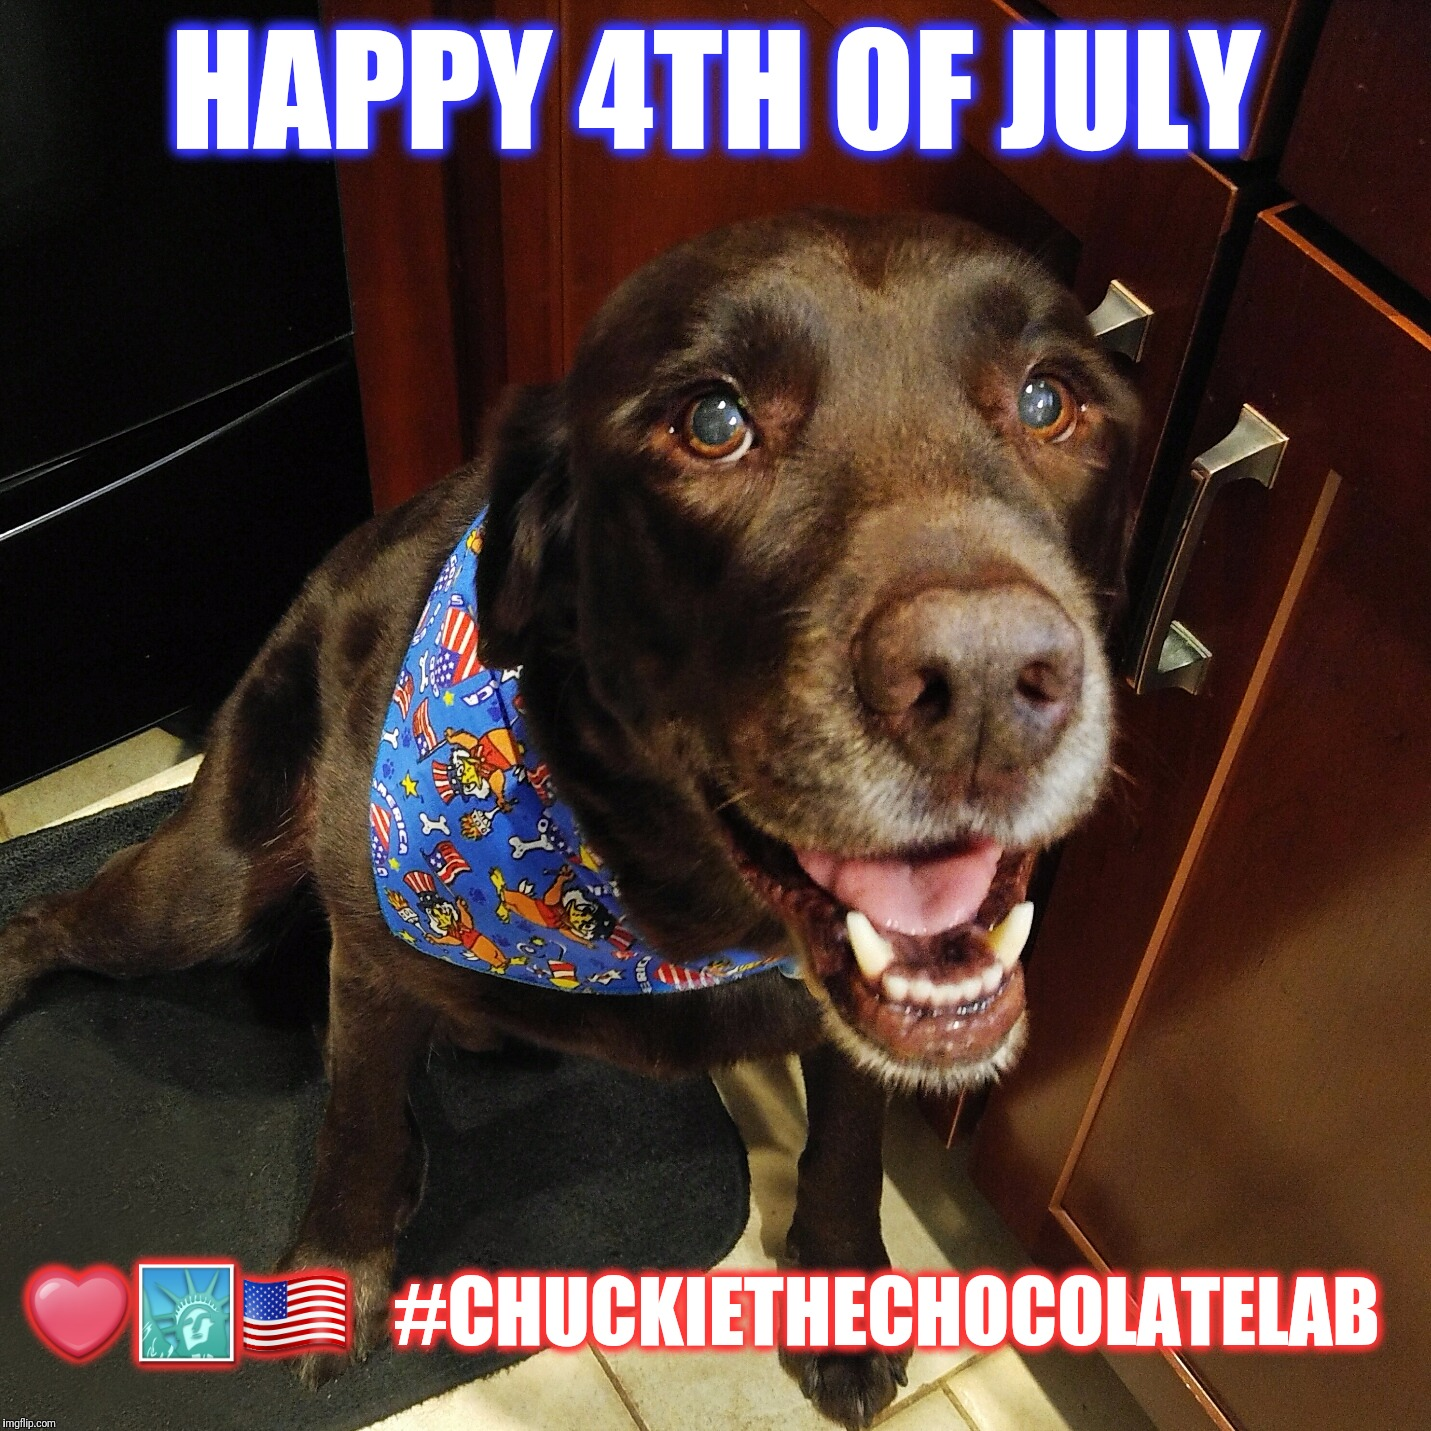 Happy 4th of July  |  HAPPY 4TH OF JULY; ❤️🗽🇺🇸   #CHUCKIETHECHOCOLATELAB | image tagged in happy 4th of july chuckie the chocolate lab,4th of july,fourth of july,dogs,chuckie the chocolate lab,usa | made w/ Imgflip meme maker